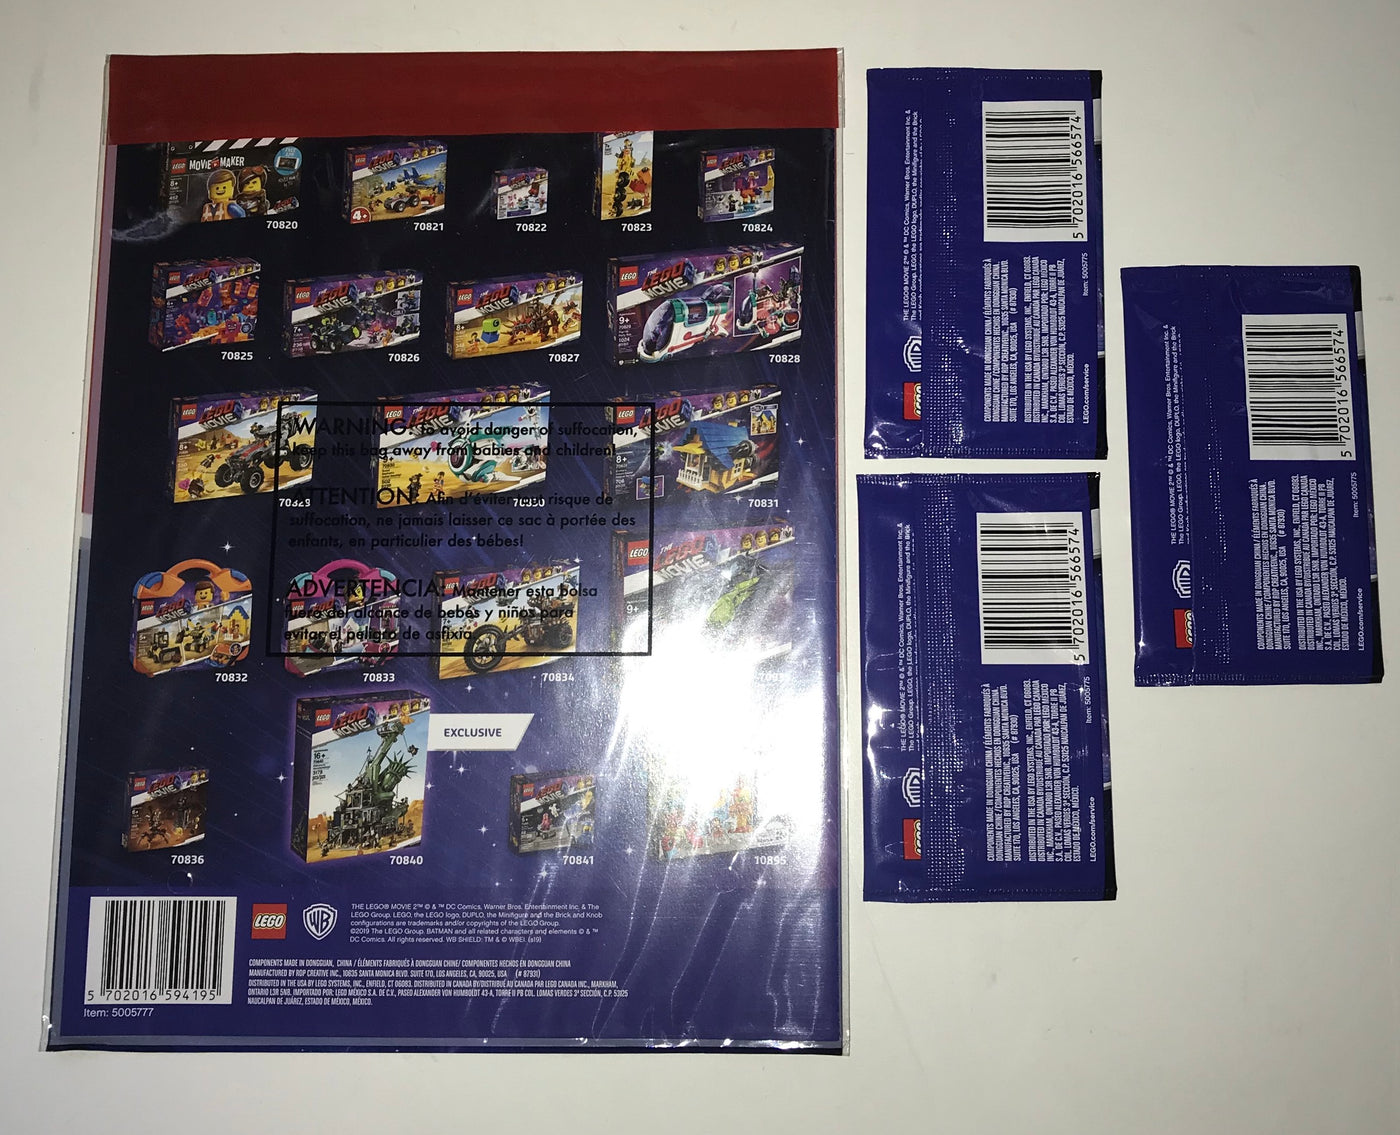 Lego Movie 2 Trading Card Collector Album 3 Packs Of Trading Cards